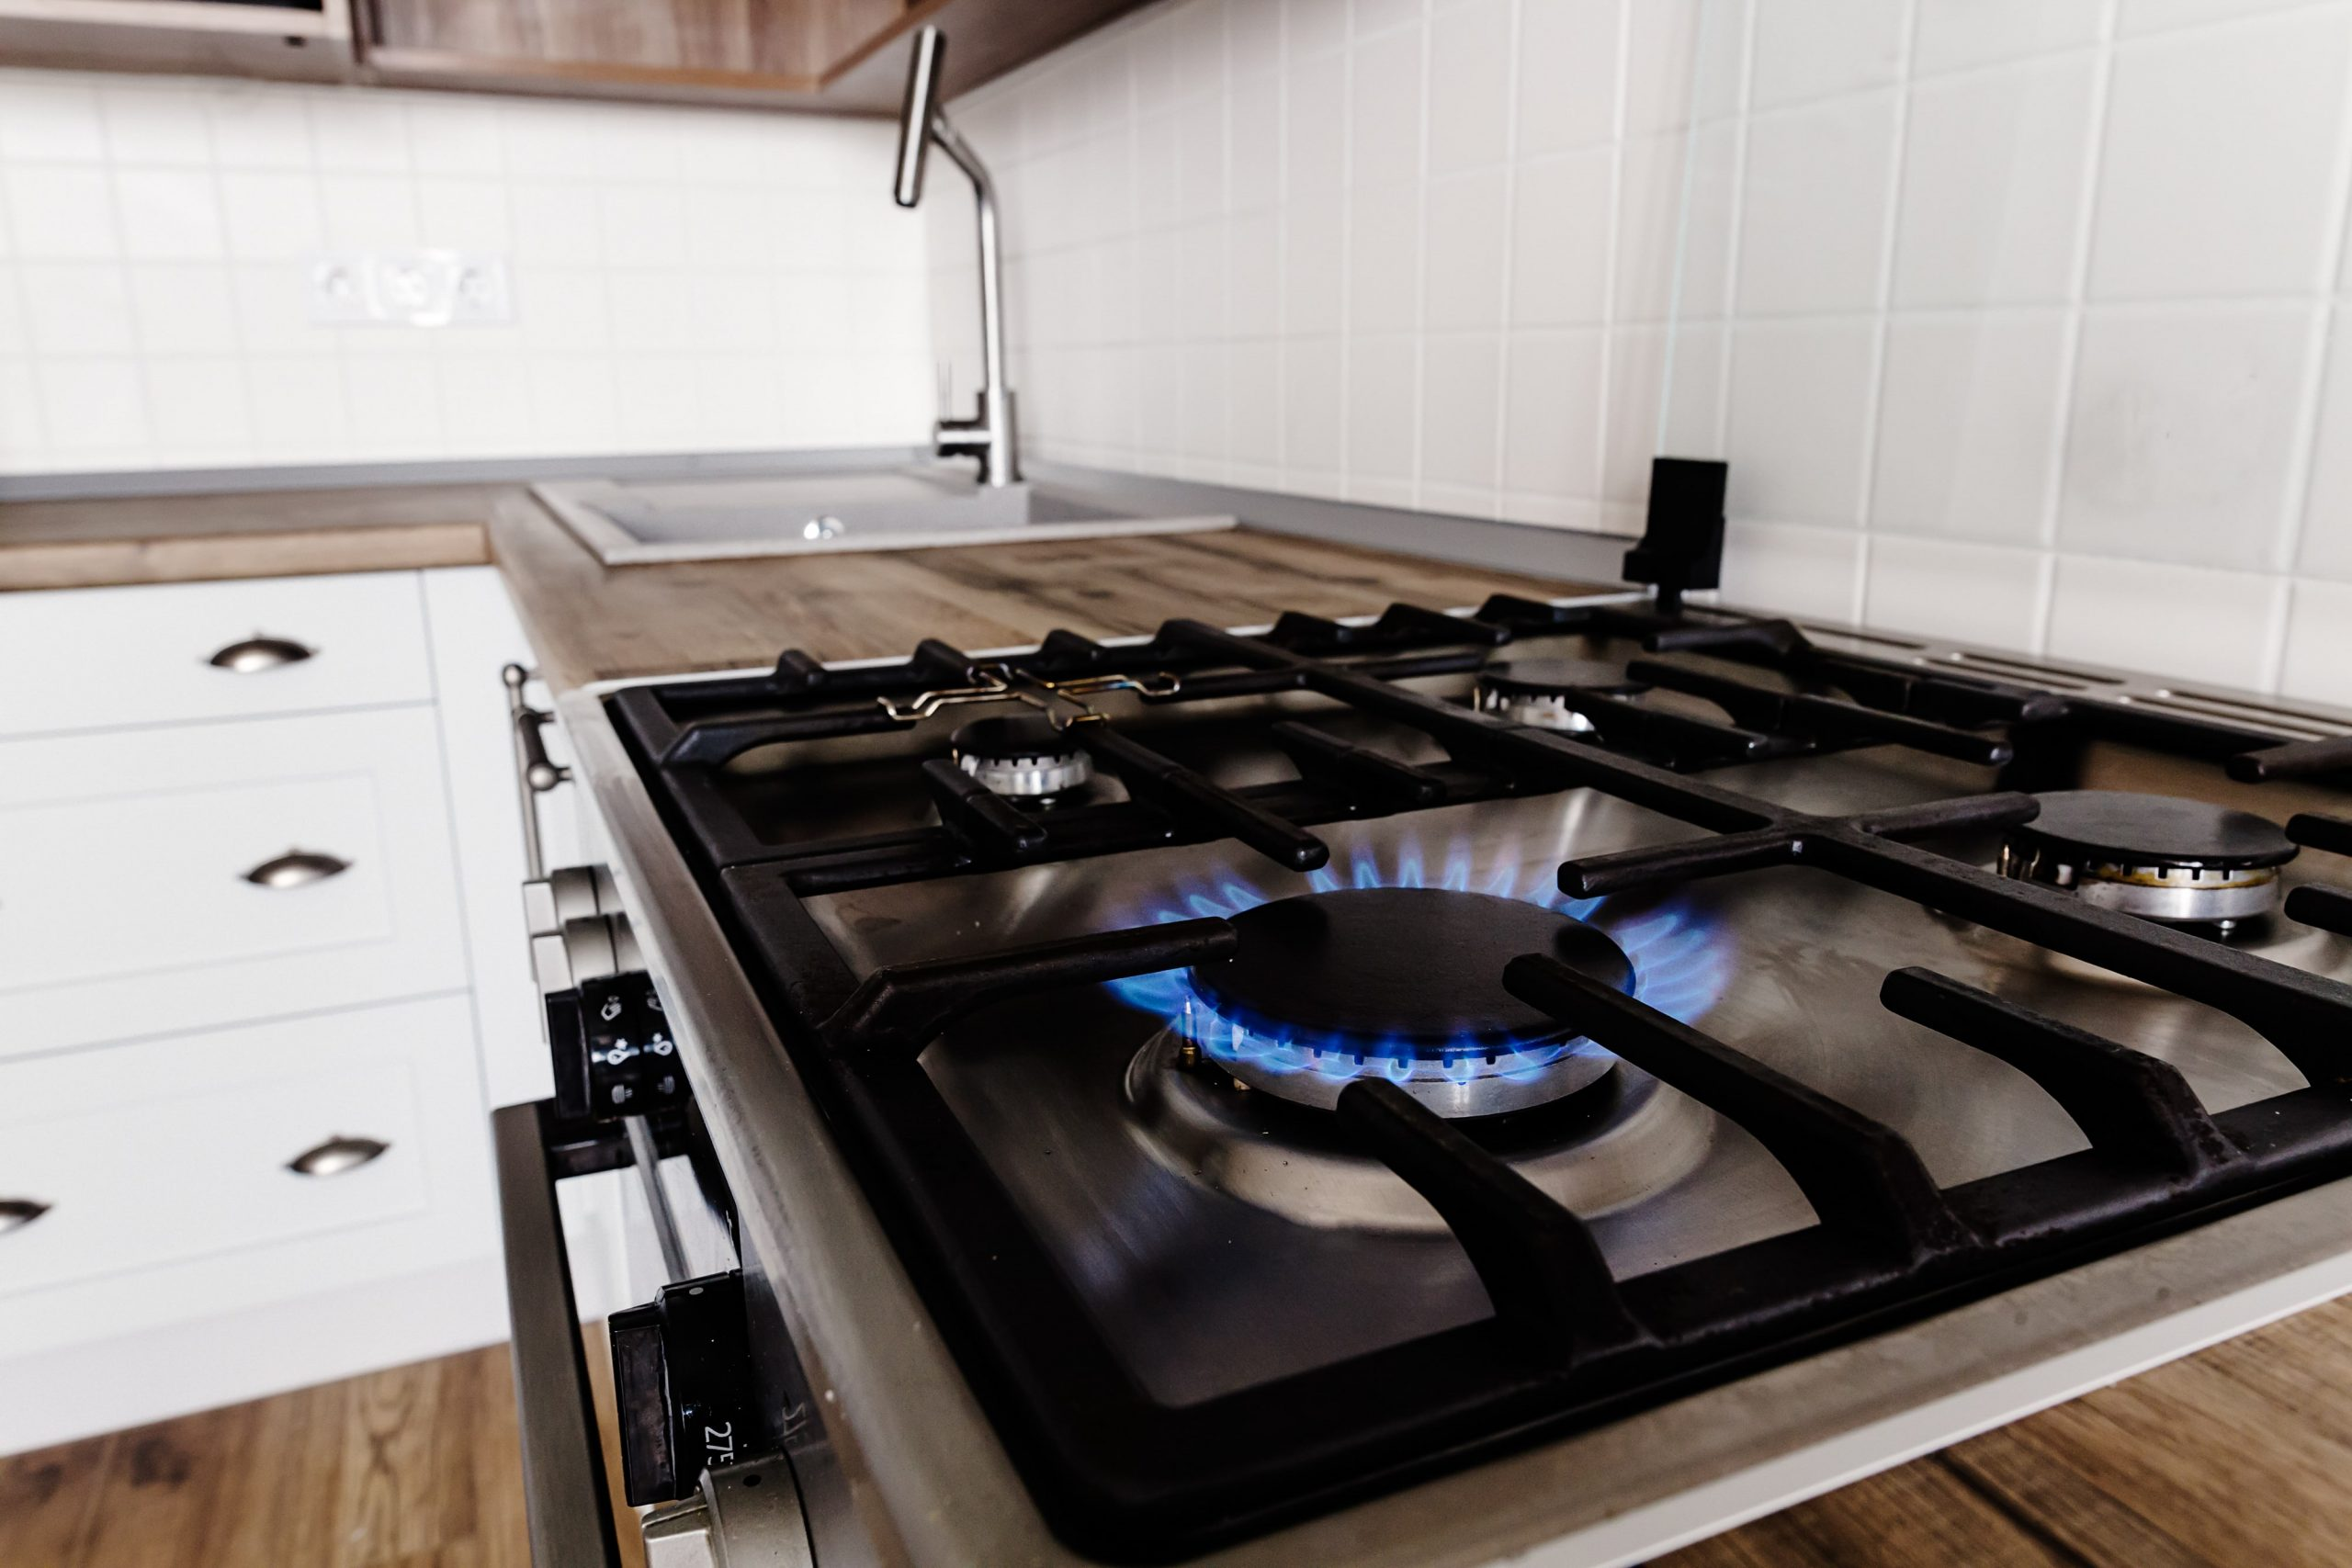 burning-gas-from-kitchen-stove-on-background-of-st-42XFHVU-min